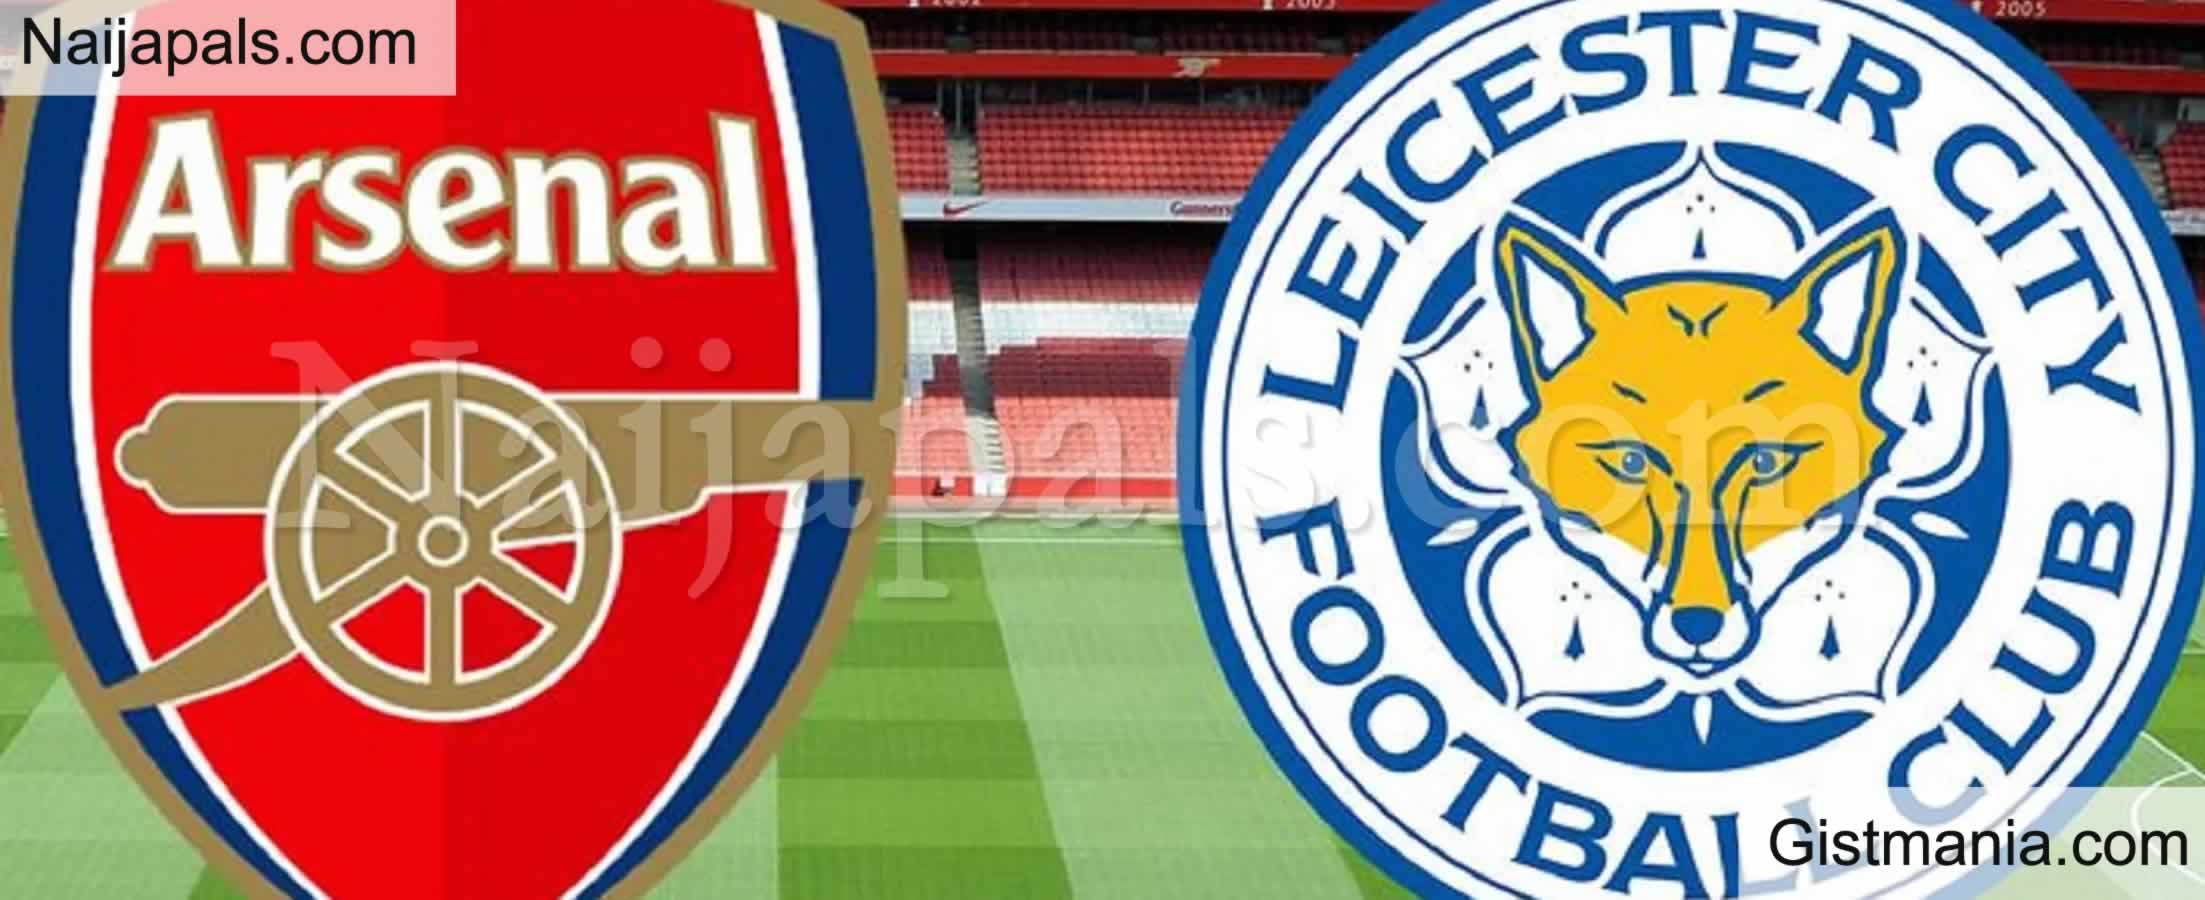 <img alt='.' class='lazyload' data-src='https://img.gistmania.com/emot/soccer.gif' /><b> Arsenal v Leicester City : English Premier League Match, Team News, Goal Scorers and Stats</b>